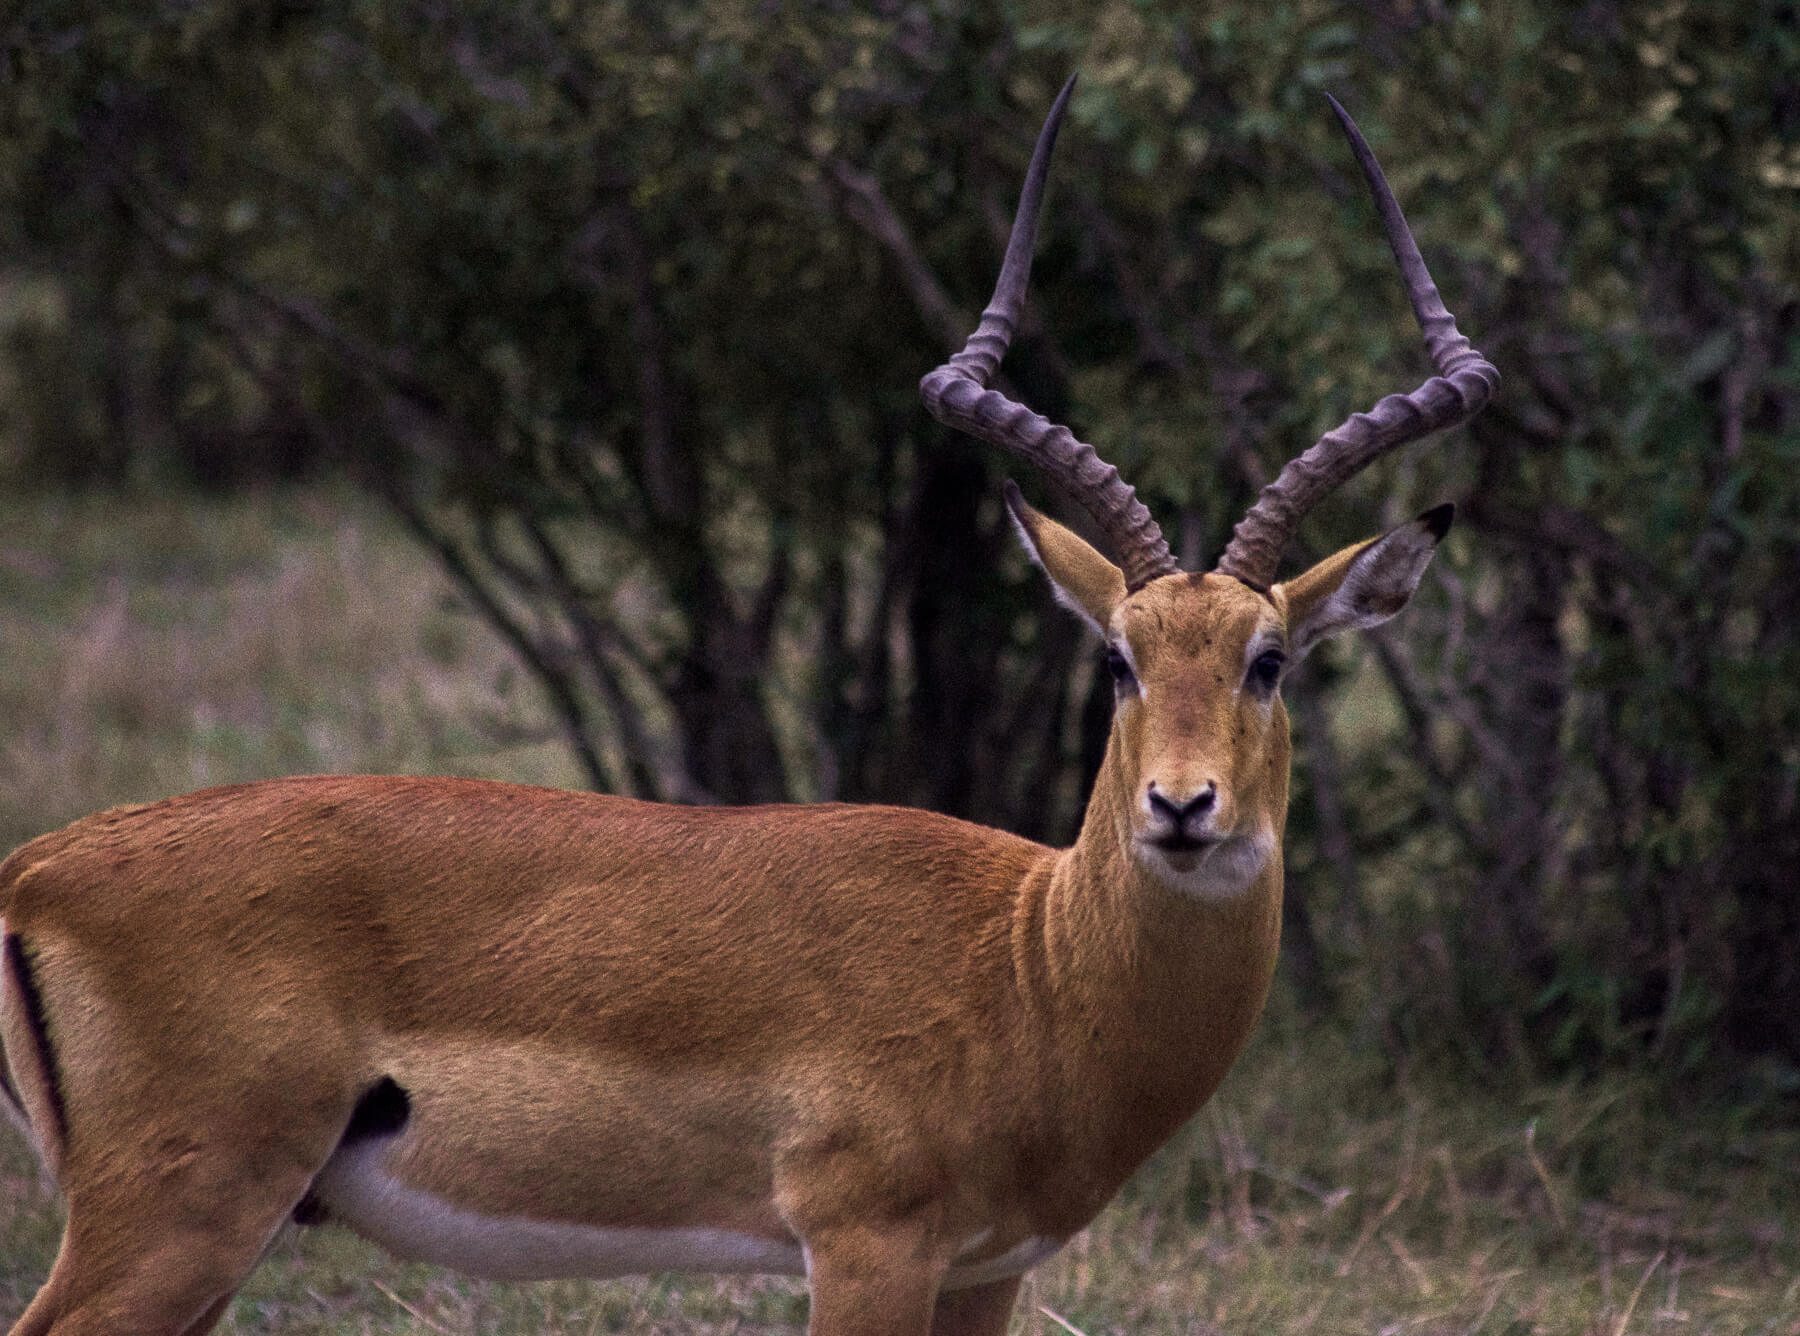 A male Impala looking at the camera with big horns